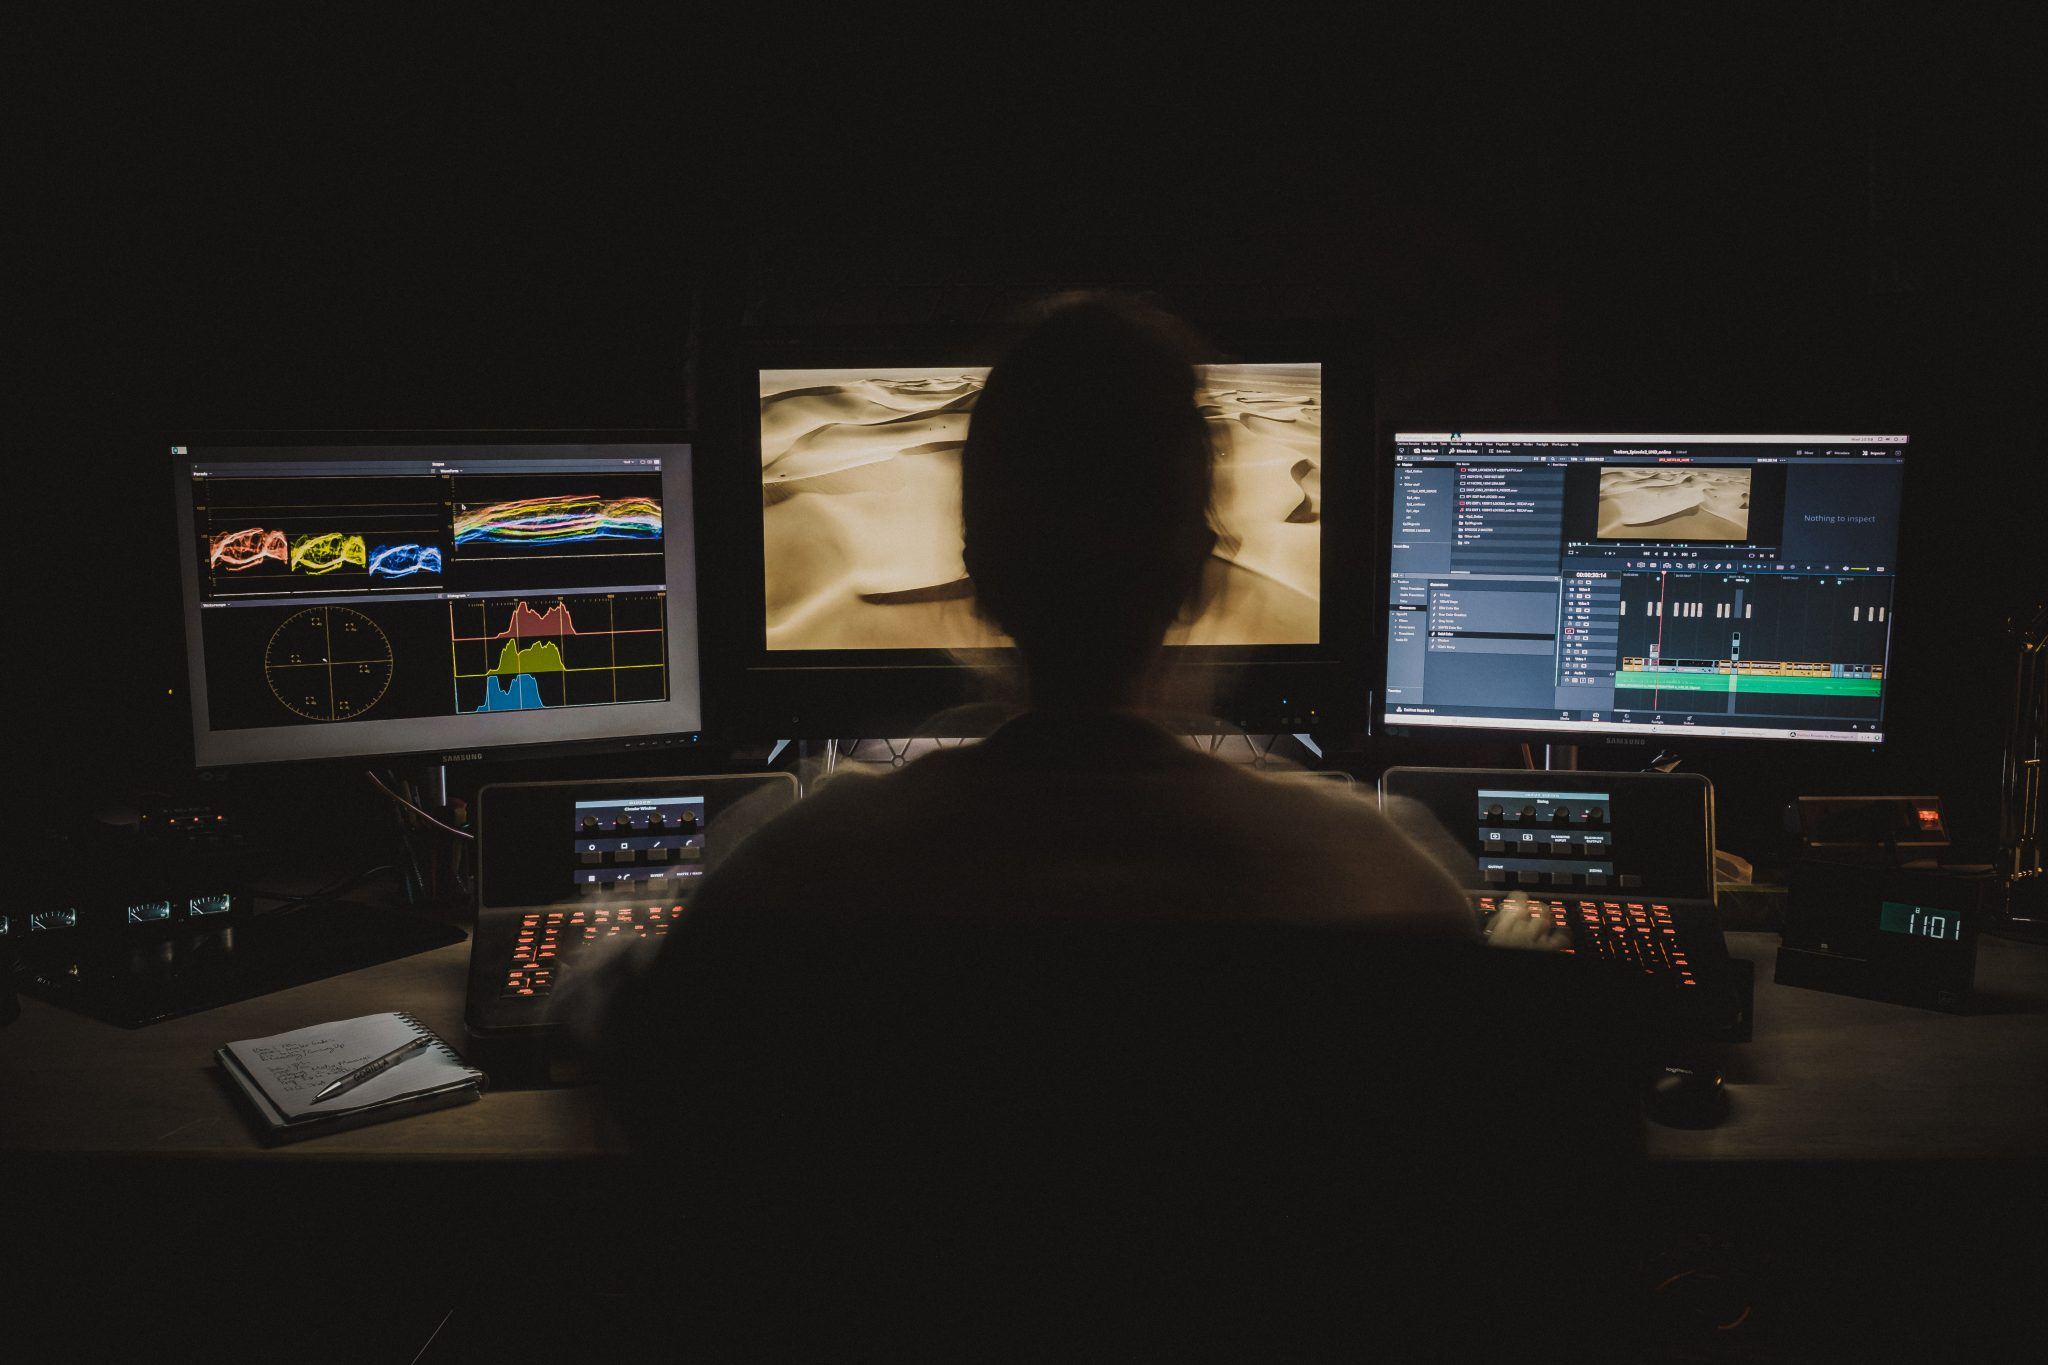 Gorilla Group Post production editing suite still